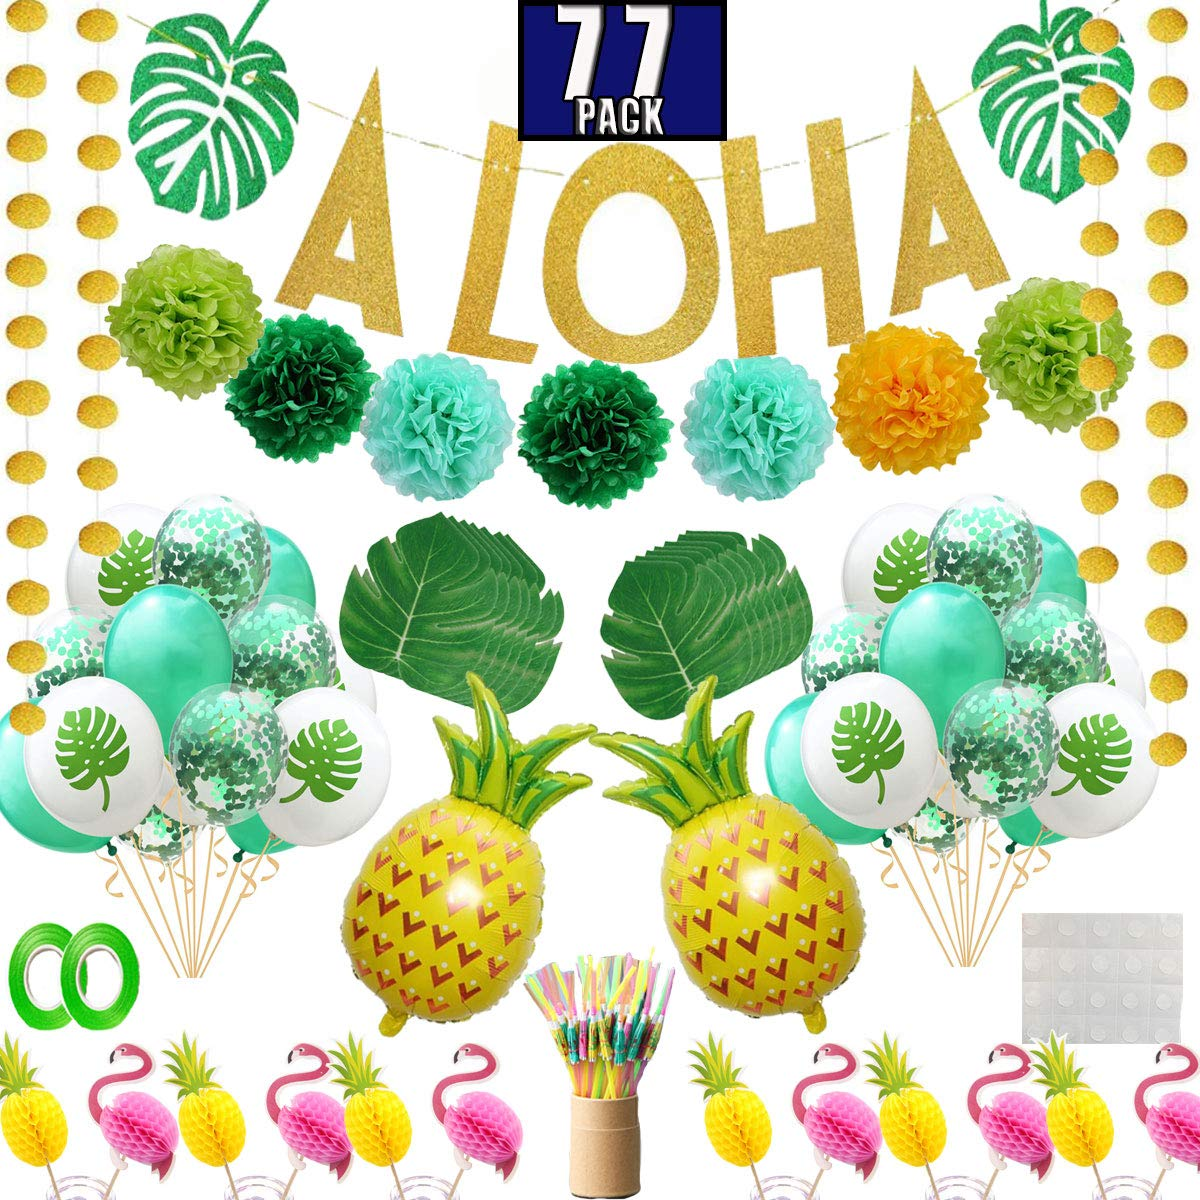 Funnlot Hawaiian Party Decorations 77Pcs Luau Birthday Party Supplies Including Aloha Banner Tropical Palm Leaves Cake Topper Balloons Drinking Umbrella Straws for Aloha Party Summer Party